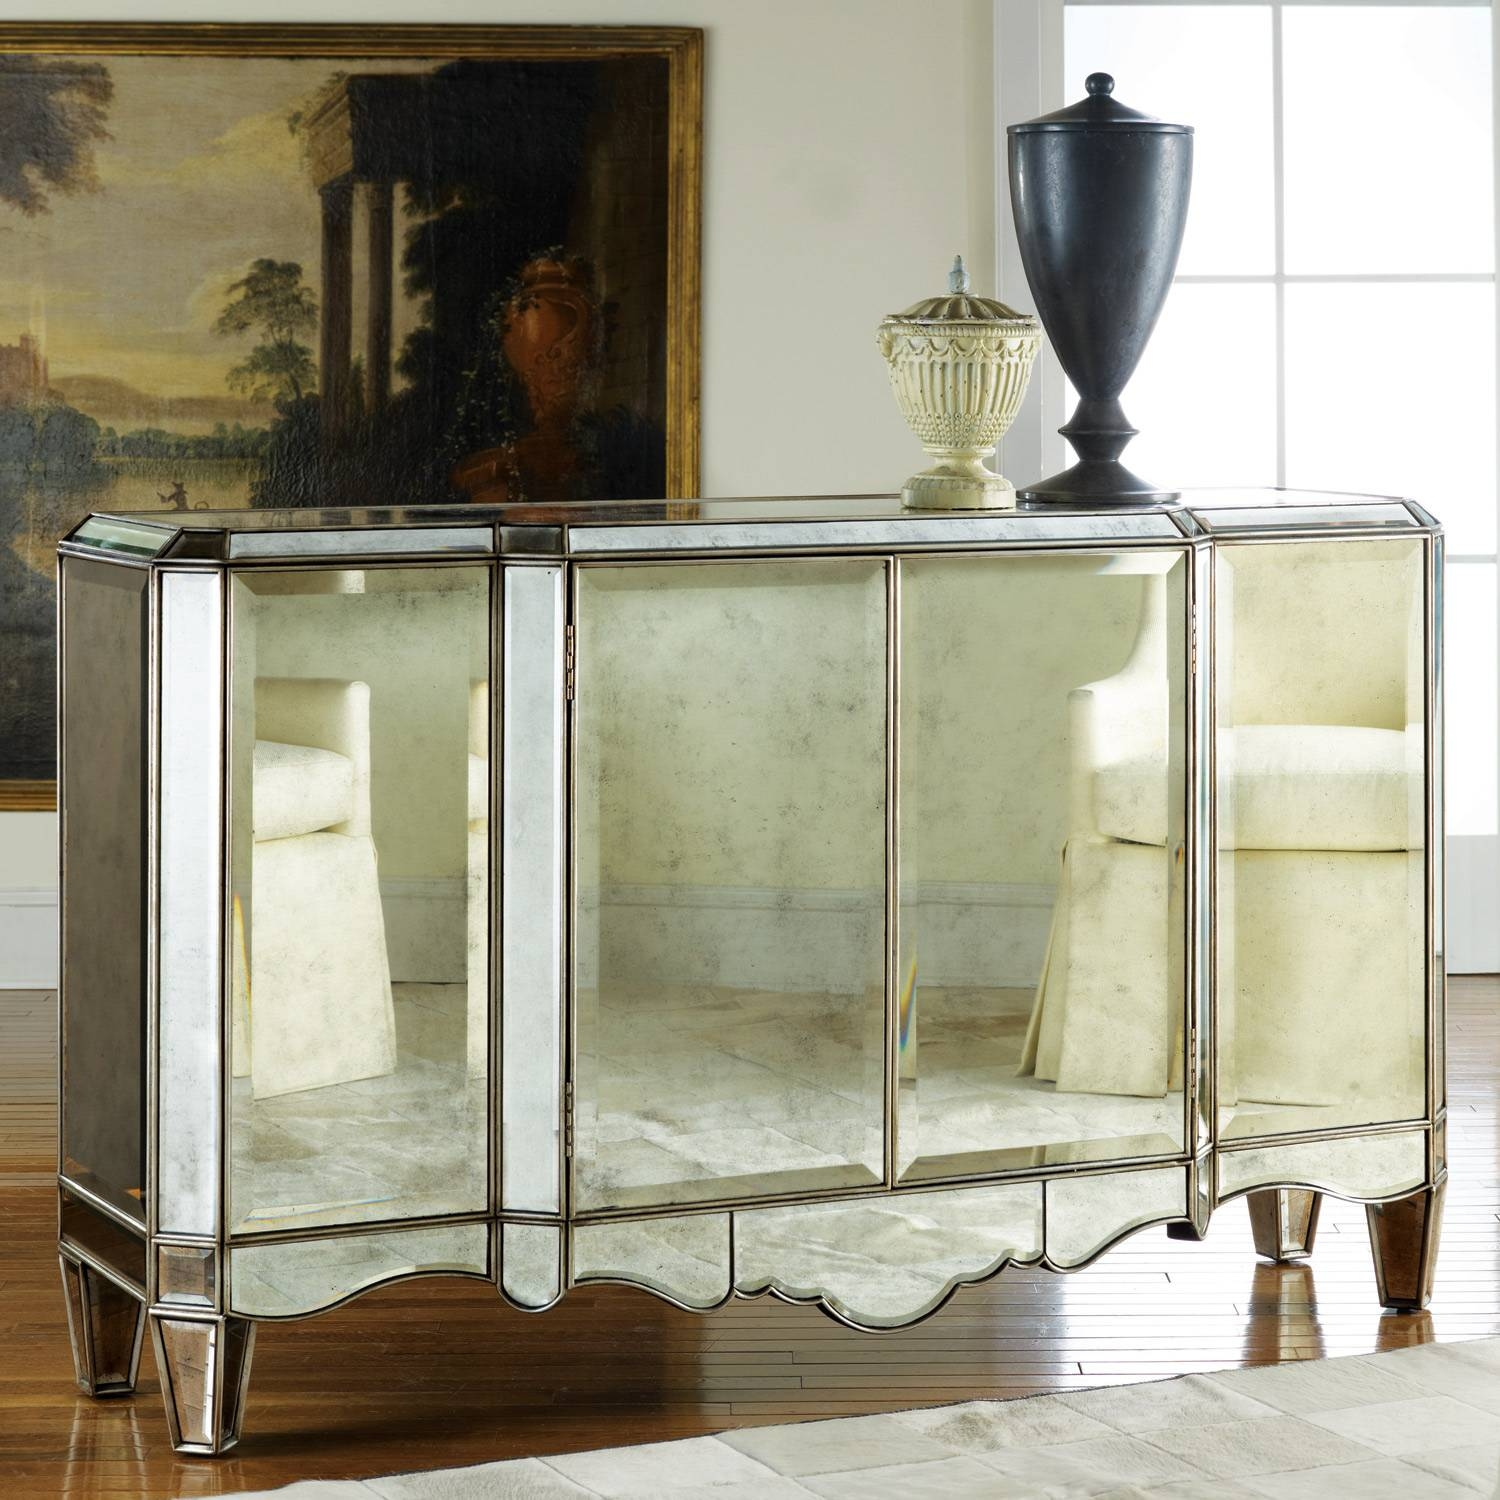 Modern History Home Mirrored Sideboard With Mirrored Sideboards Furniture (View 2 of 15)